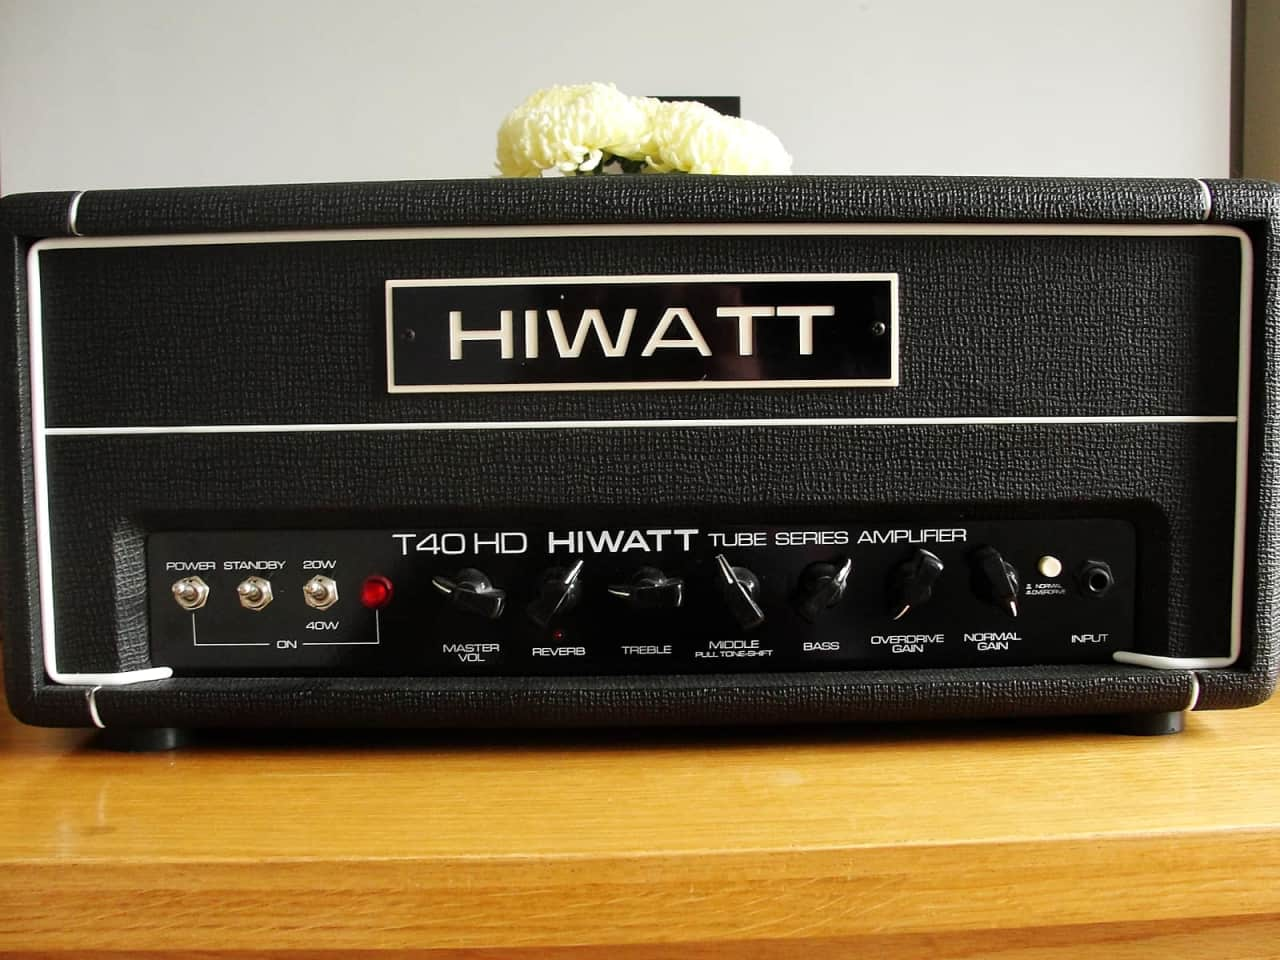 hiwatt t40 hd tube series amplifier reverb. Black Bedroom Furniture Sets. Home Design Ideas